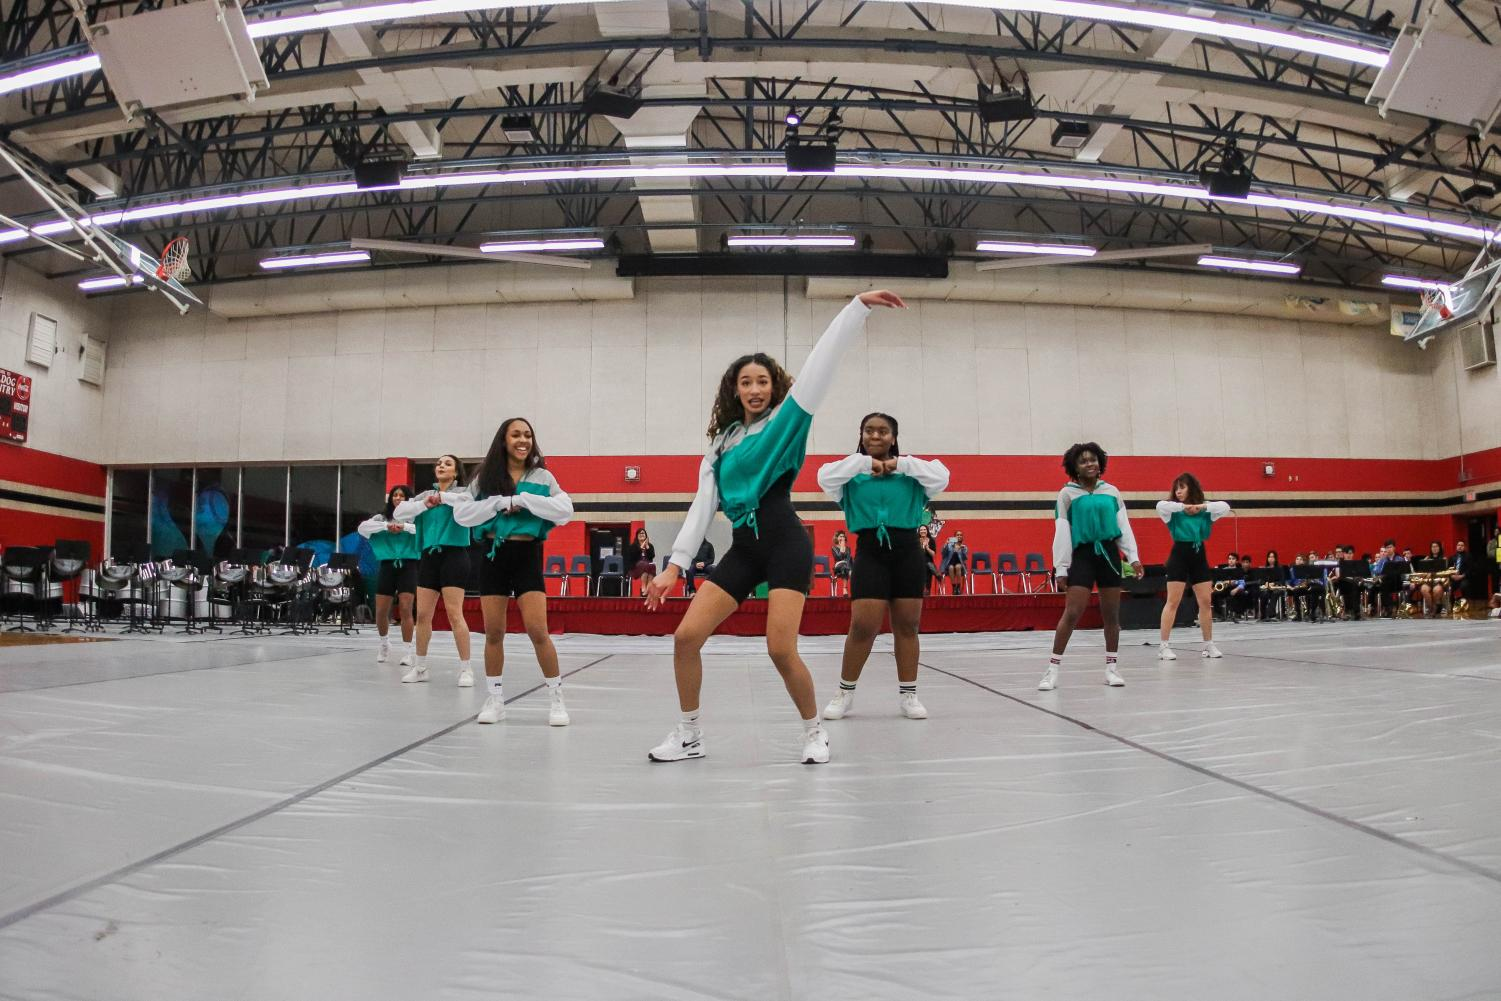 (Left to right) Kiara Gonzales, Kaeleigh Chambers, Lisa Wilkerson, Nyah Bernucho, Camron Sneed, Seun Odufuye, and Gia Spencer dance as part of the Multi Awareness club for hundreds of students  in the JBHS Black History Month assembly in front of the main podium. Both gyms were open for the event, with the performance covering the small gym's floor while students are seated, elevated in the larger gym.